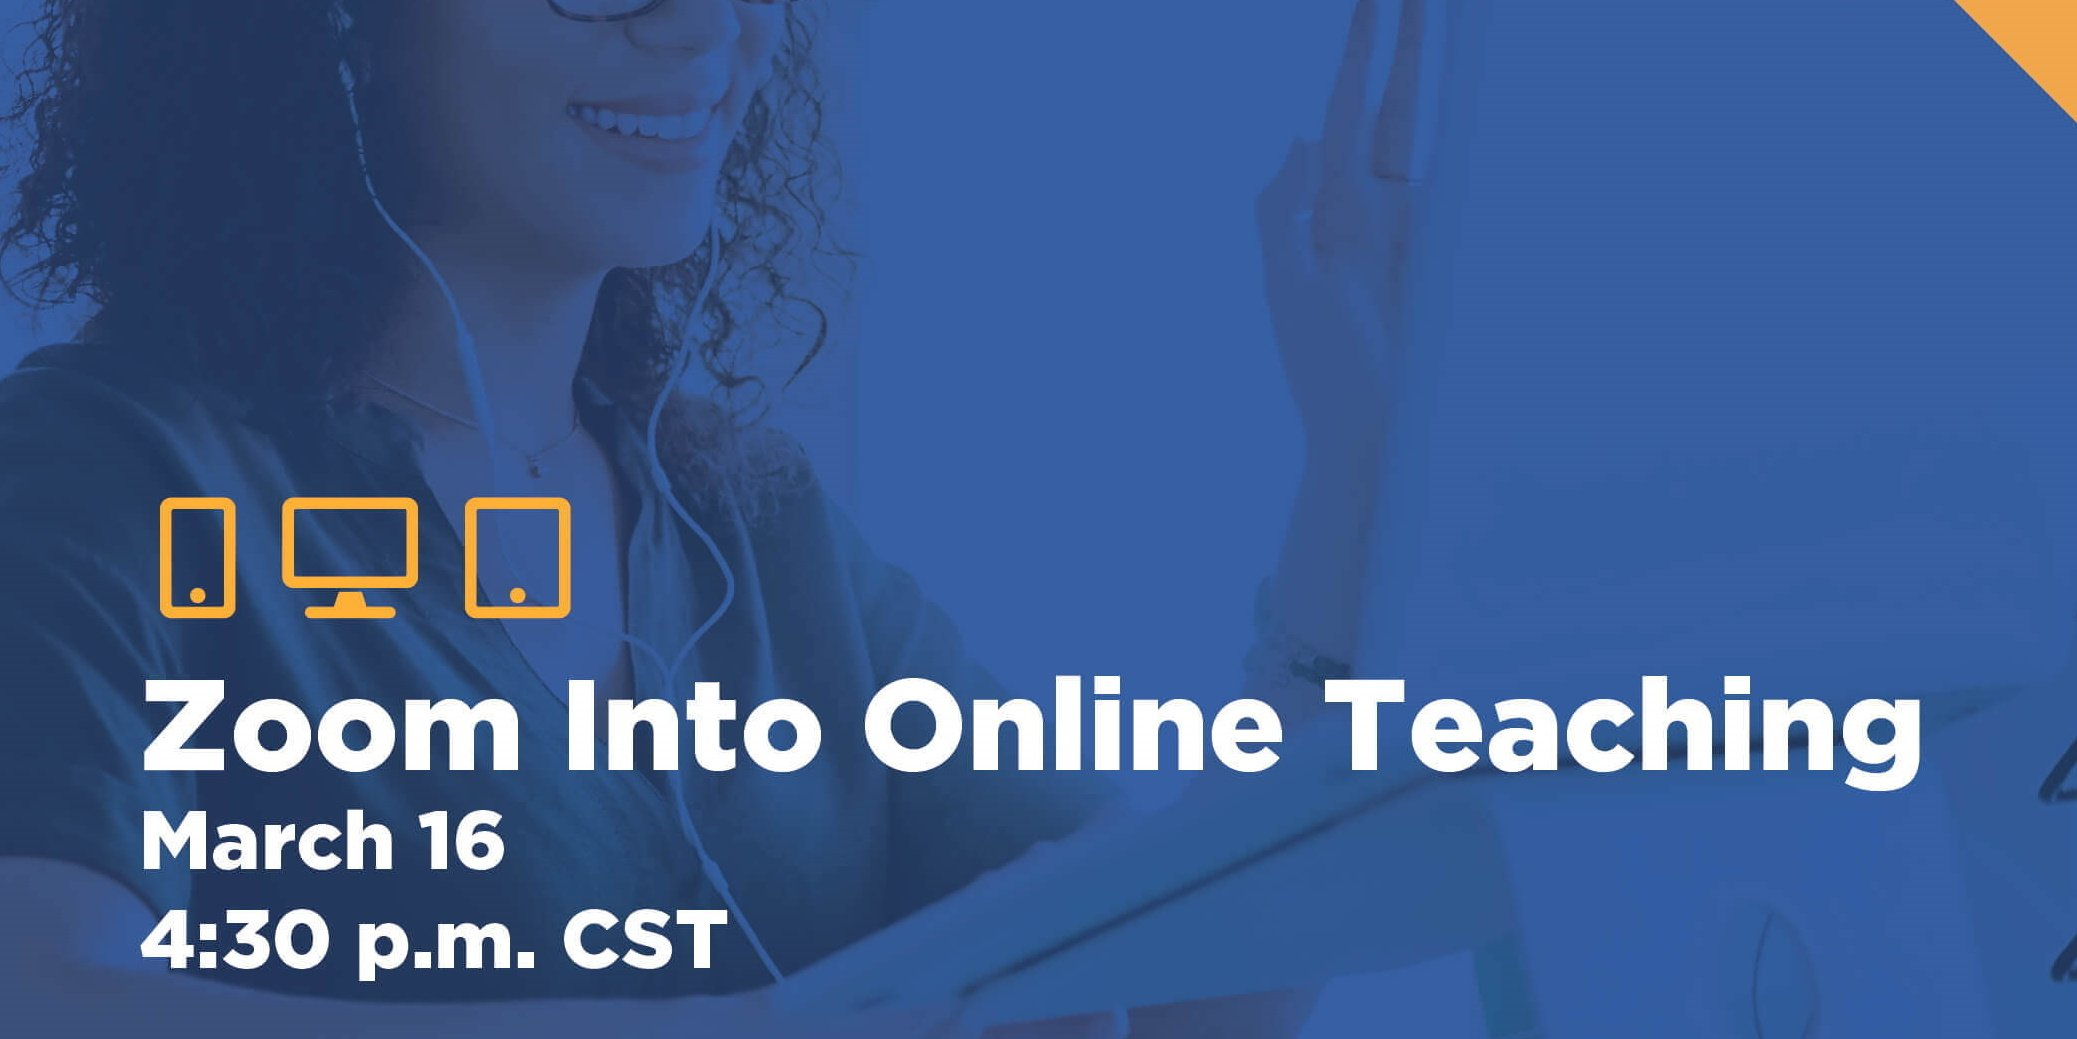 Zoom Into Online Teaching: Free live event for educators